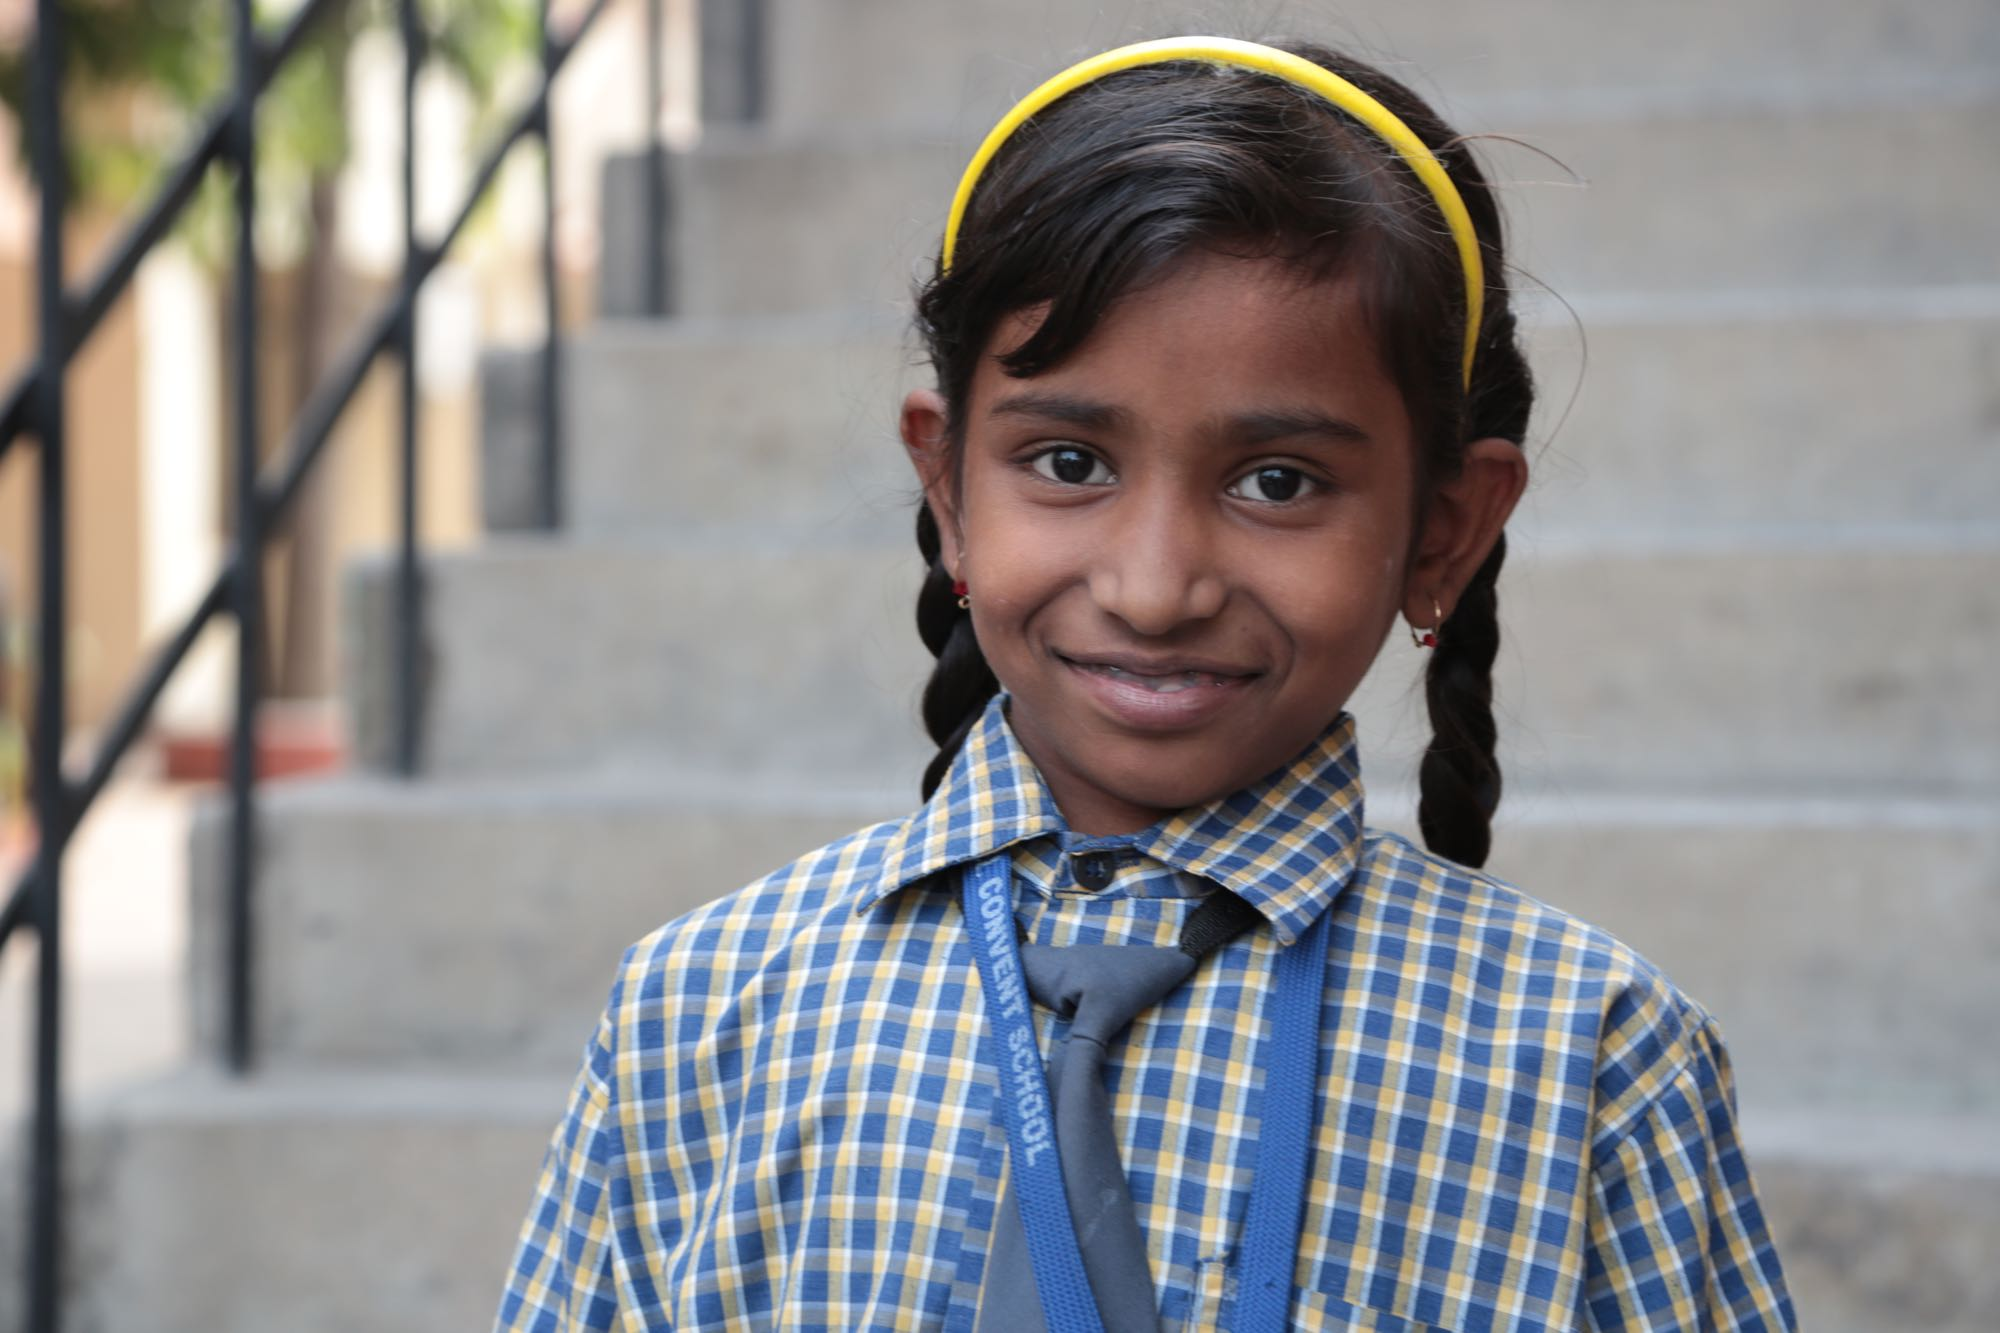 Riya - (S2S-163)Currently in need of sponsorship. Click here to sponsor Riya or another scholar for just $30/month!Sponsored previously by the Bryan family, Canada